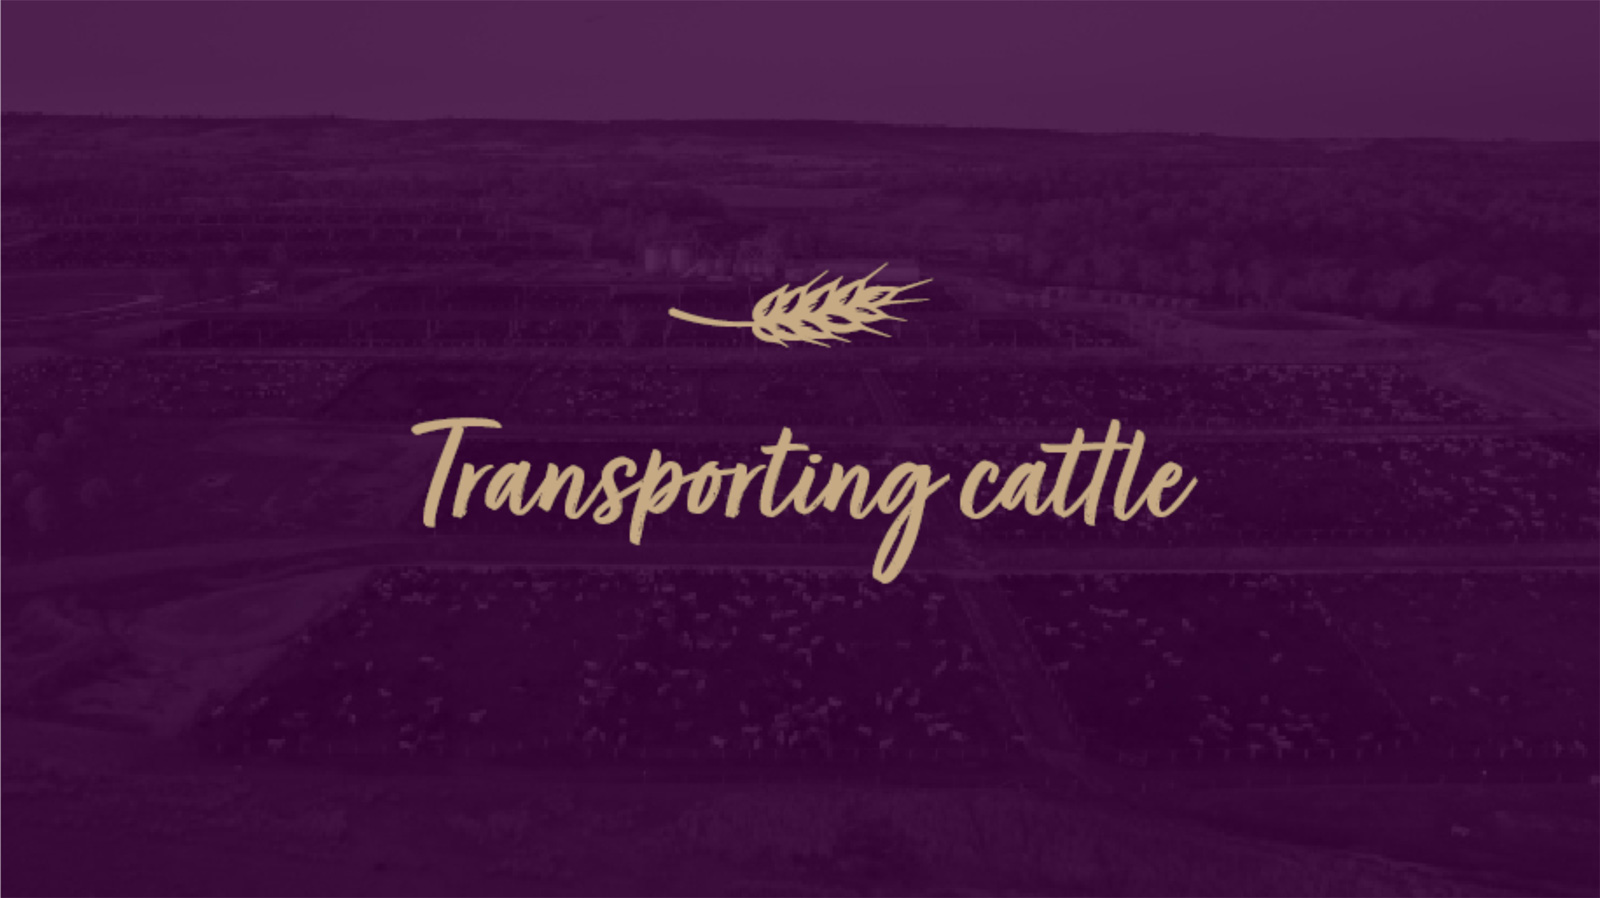 Transporting-Cattle